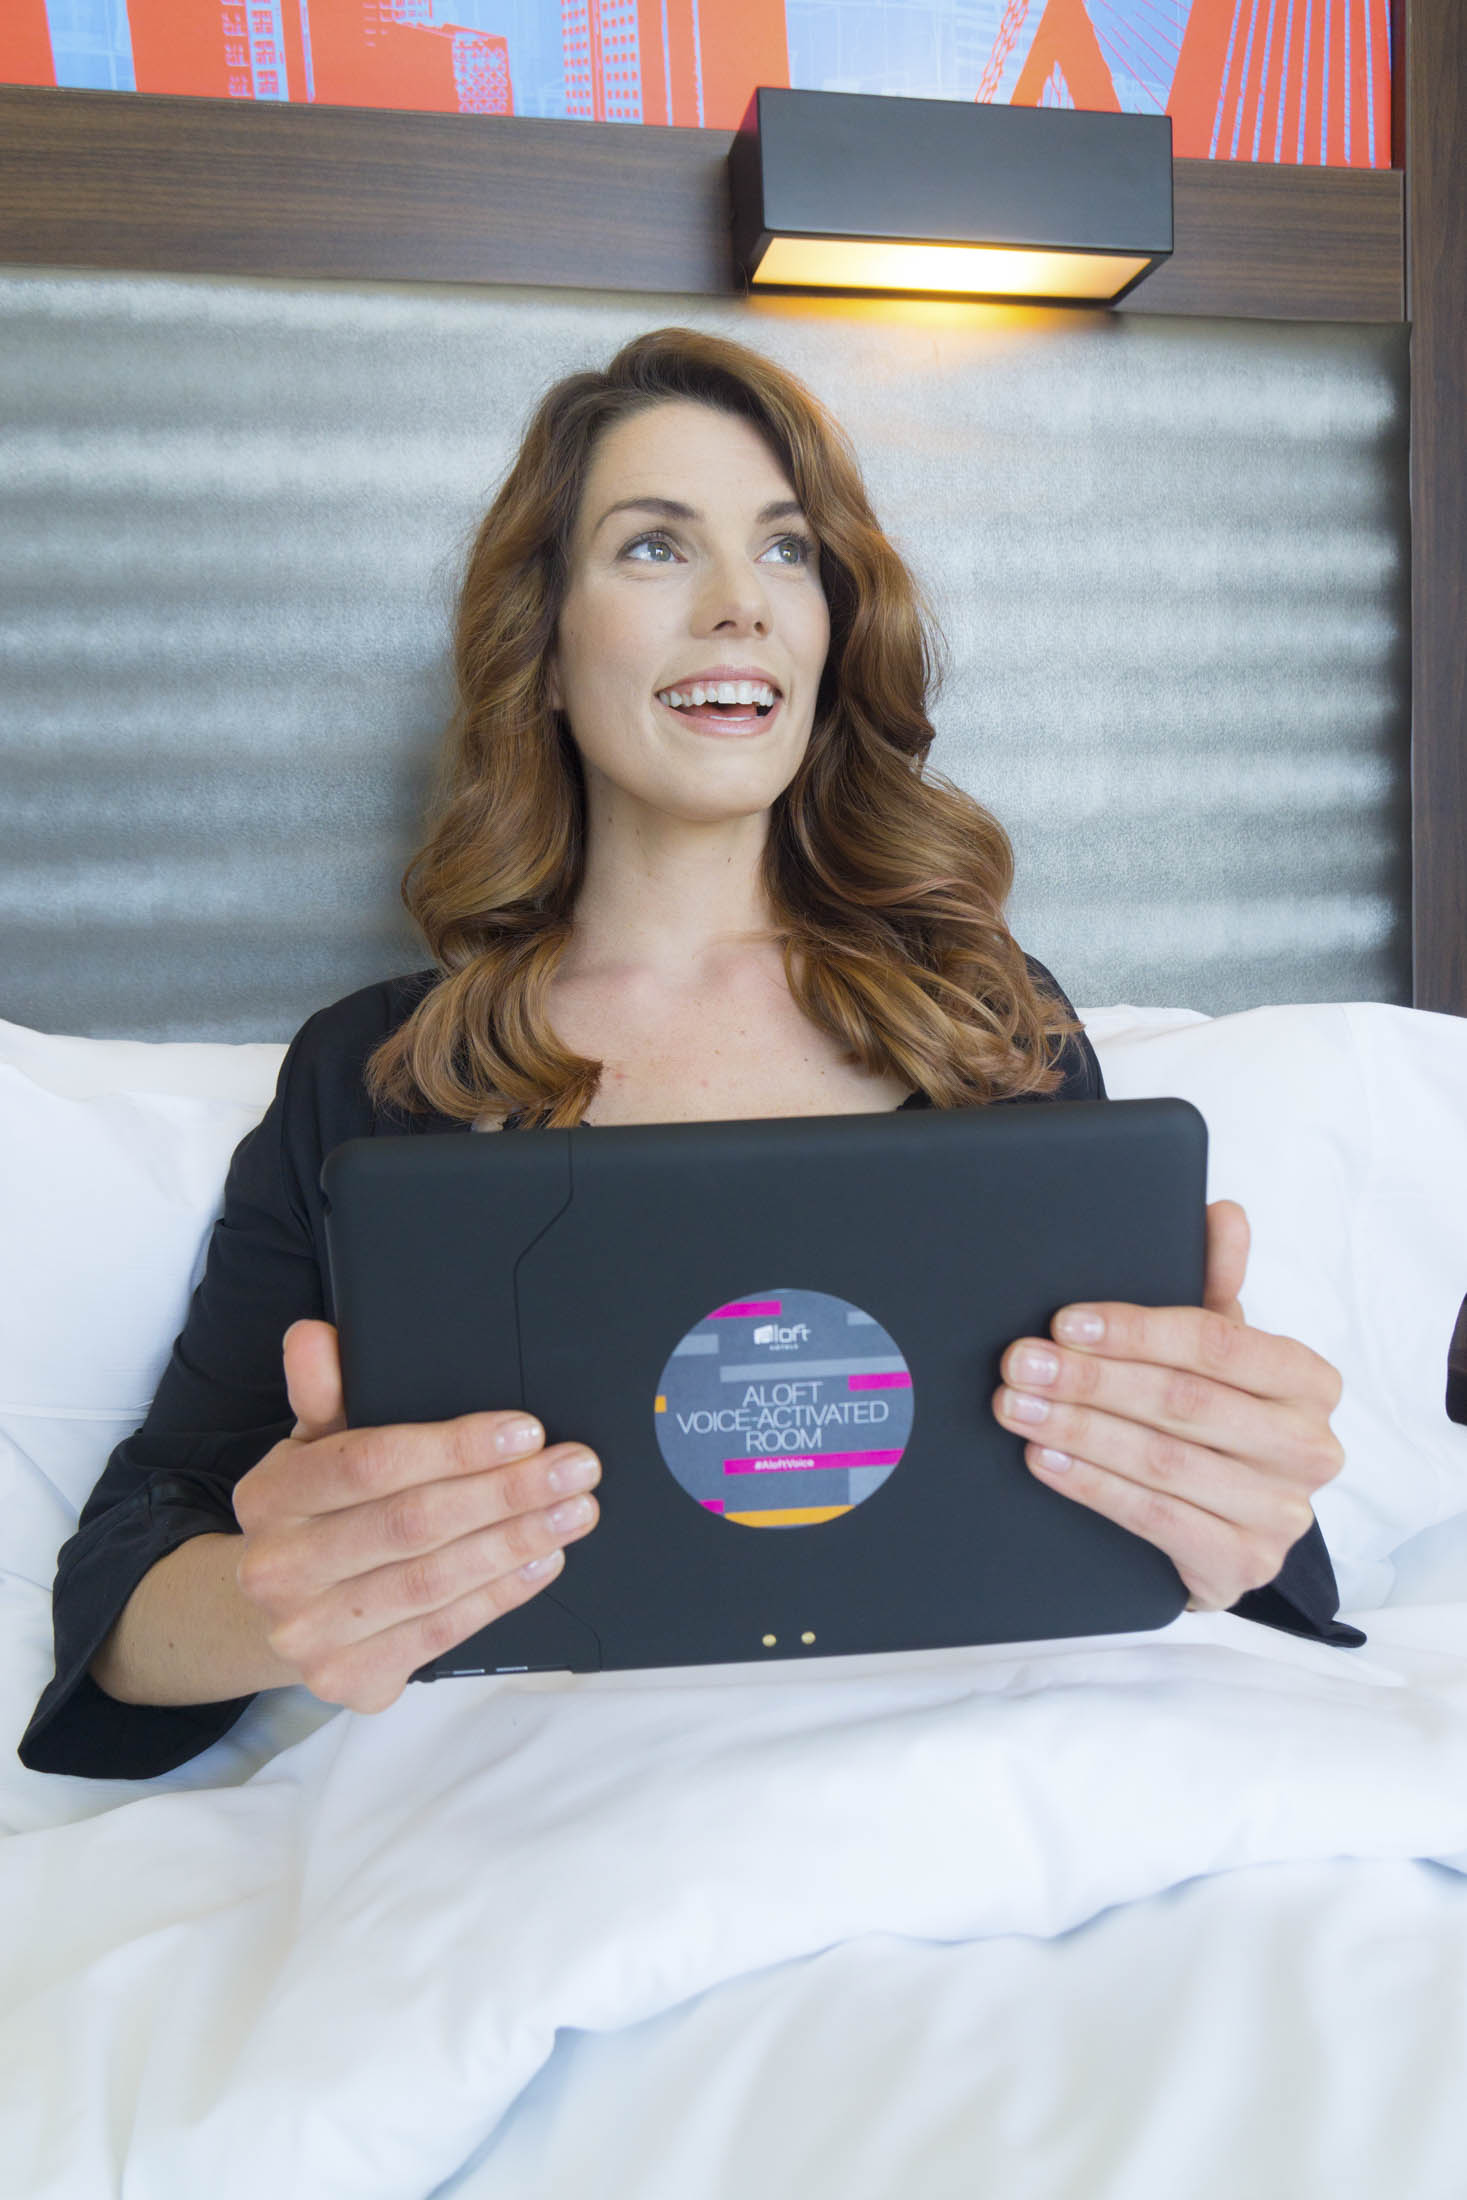 You Can Now Chat With Your Hotel Room, and It's Only Going to Get Better